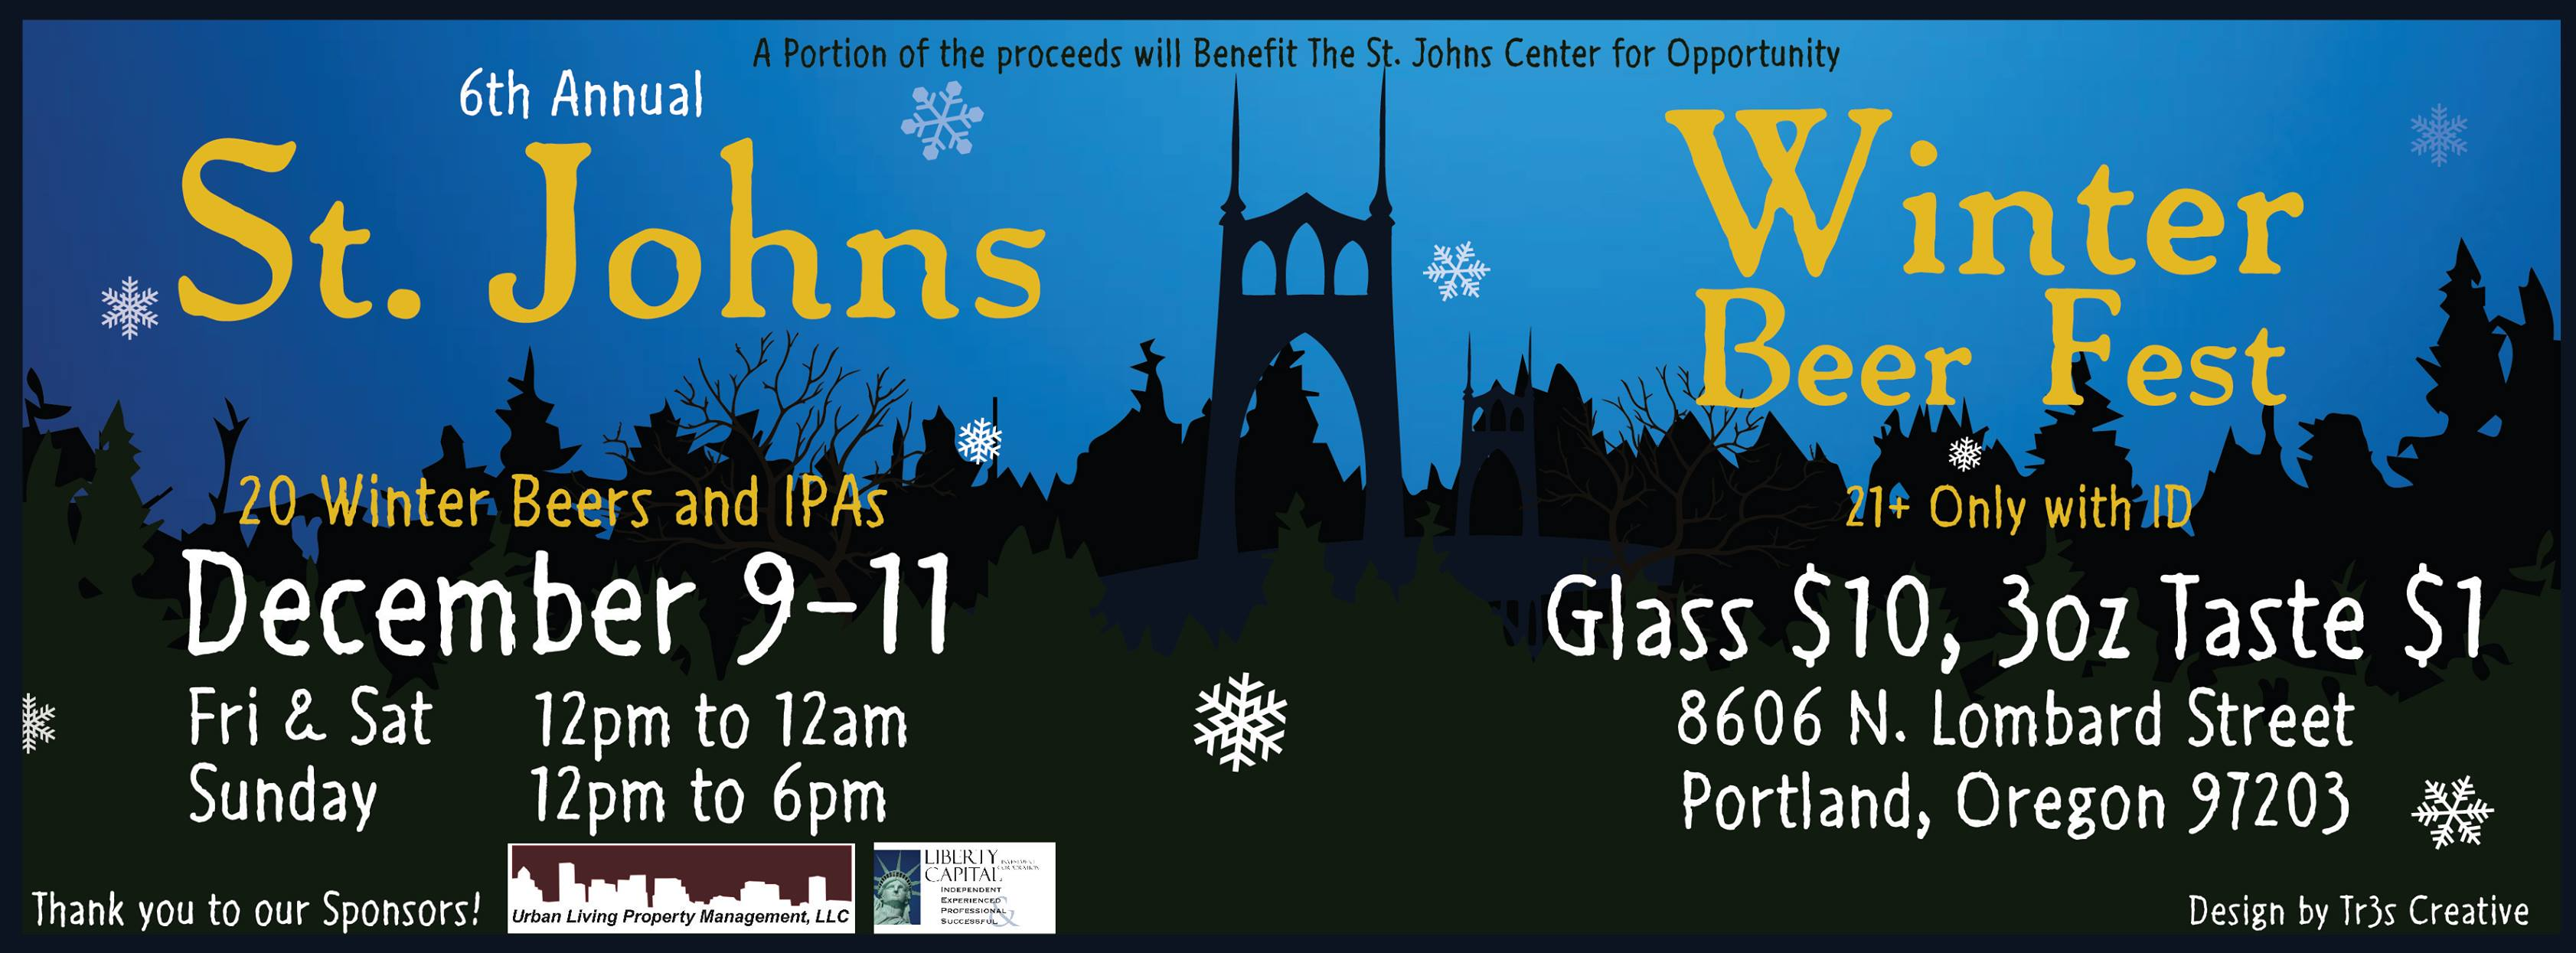 6th-annual-st-johns-winter-beer-fest-2016